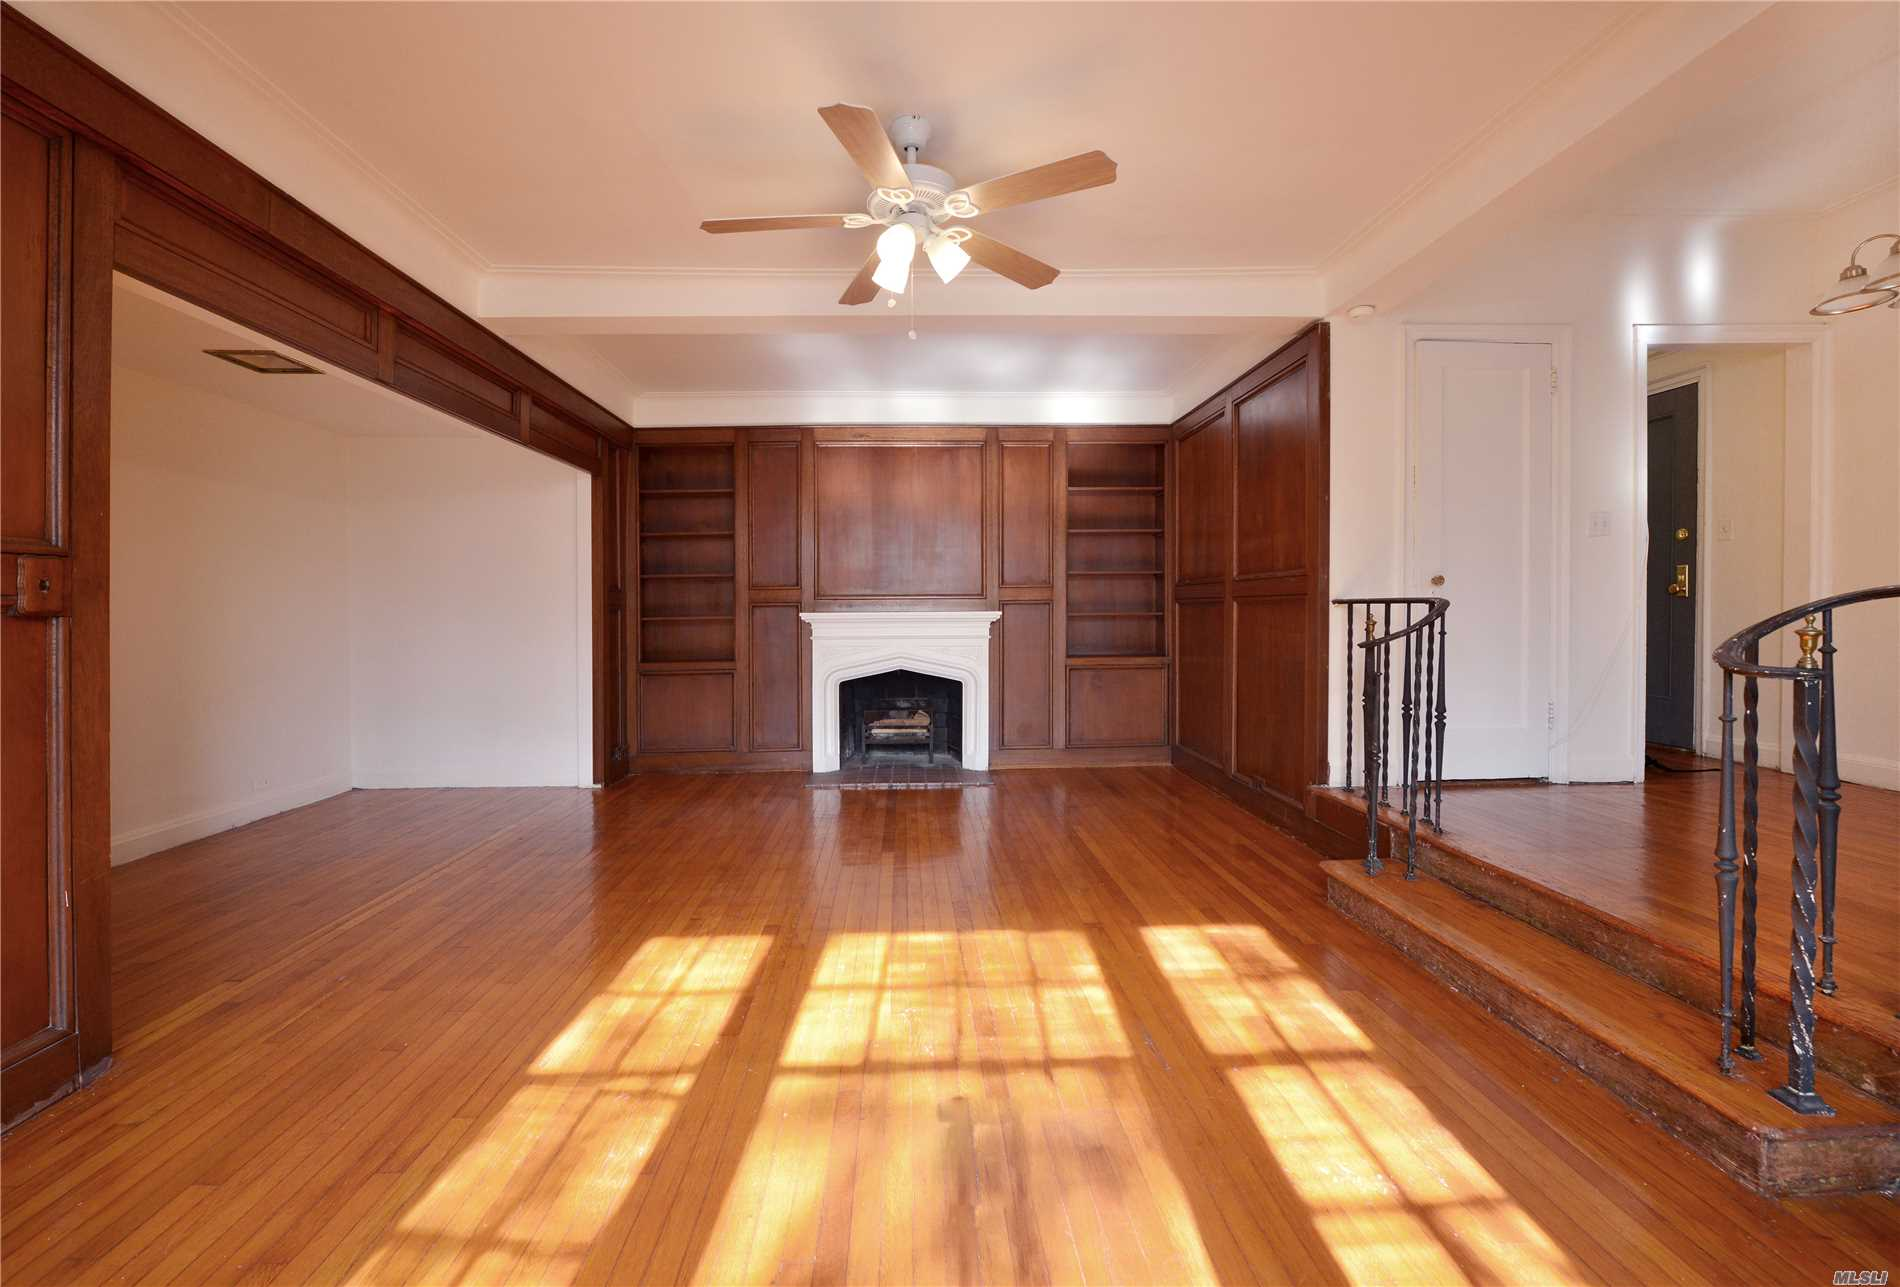 * Great Spacious Studio Apartment In Forest Hills Gardens. Just A Few Blocks From 71st Ave. Subway Station (F, E, R, M Lines) And Lirr Station. * It's On 3rd Floor, Facing South With Direct Bright Sun-Lights Clean, Newly Painted, Coated Shiny Wood Floors, And Conveniently Feature Three Closet Spaces. * Building Amenities Include Gym ($12/Mo With Initial Fee), Laundry Facility, Residence Lounge With A Pool Table, , Outside Courtyard. * P-T Doorman (From 5Pm To 1Am). Current Assessment $207.58/Mo.